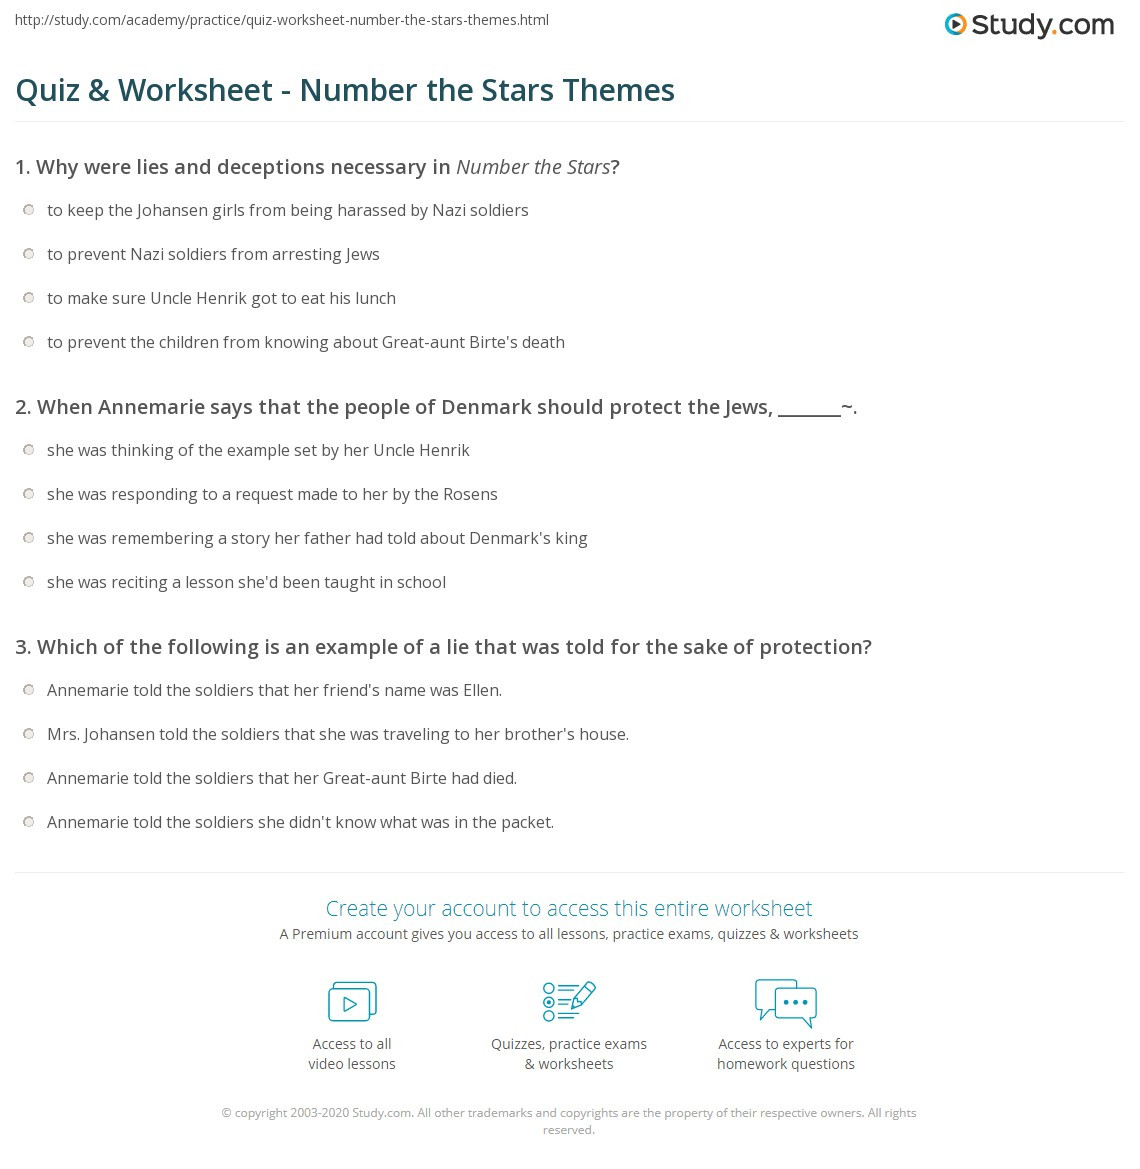 quiz worksheet number the stars themes